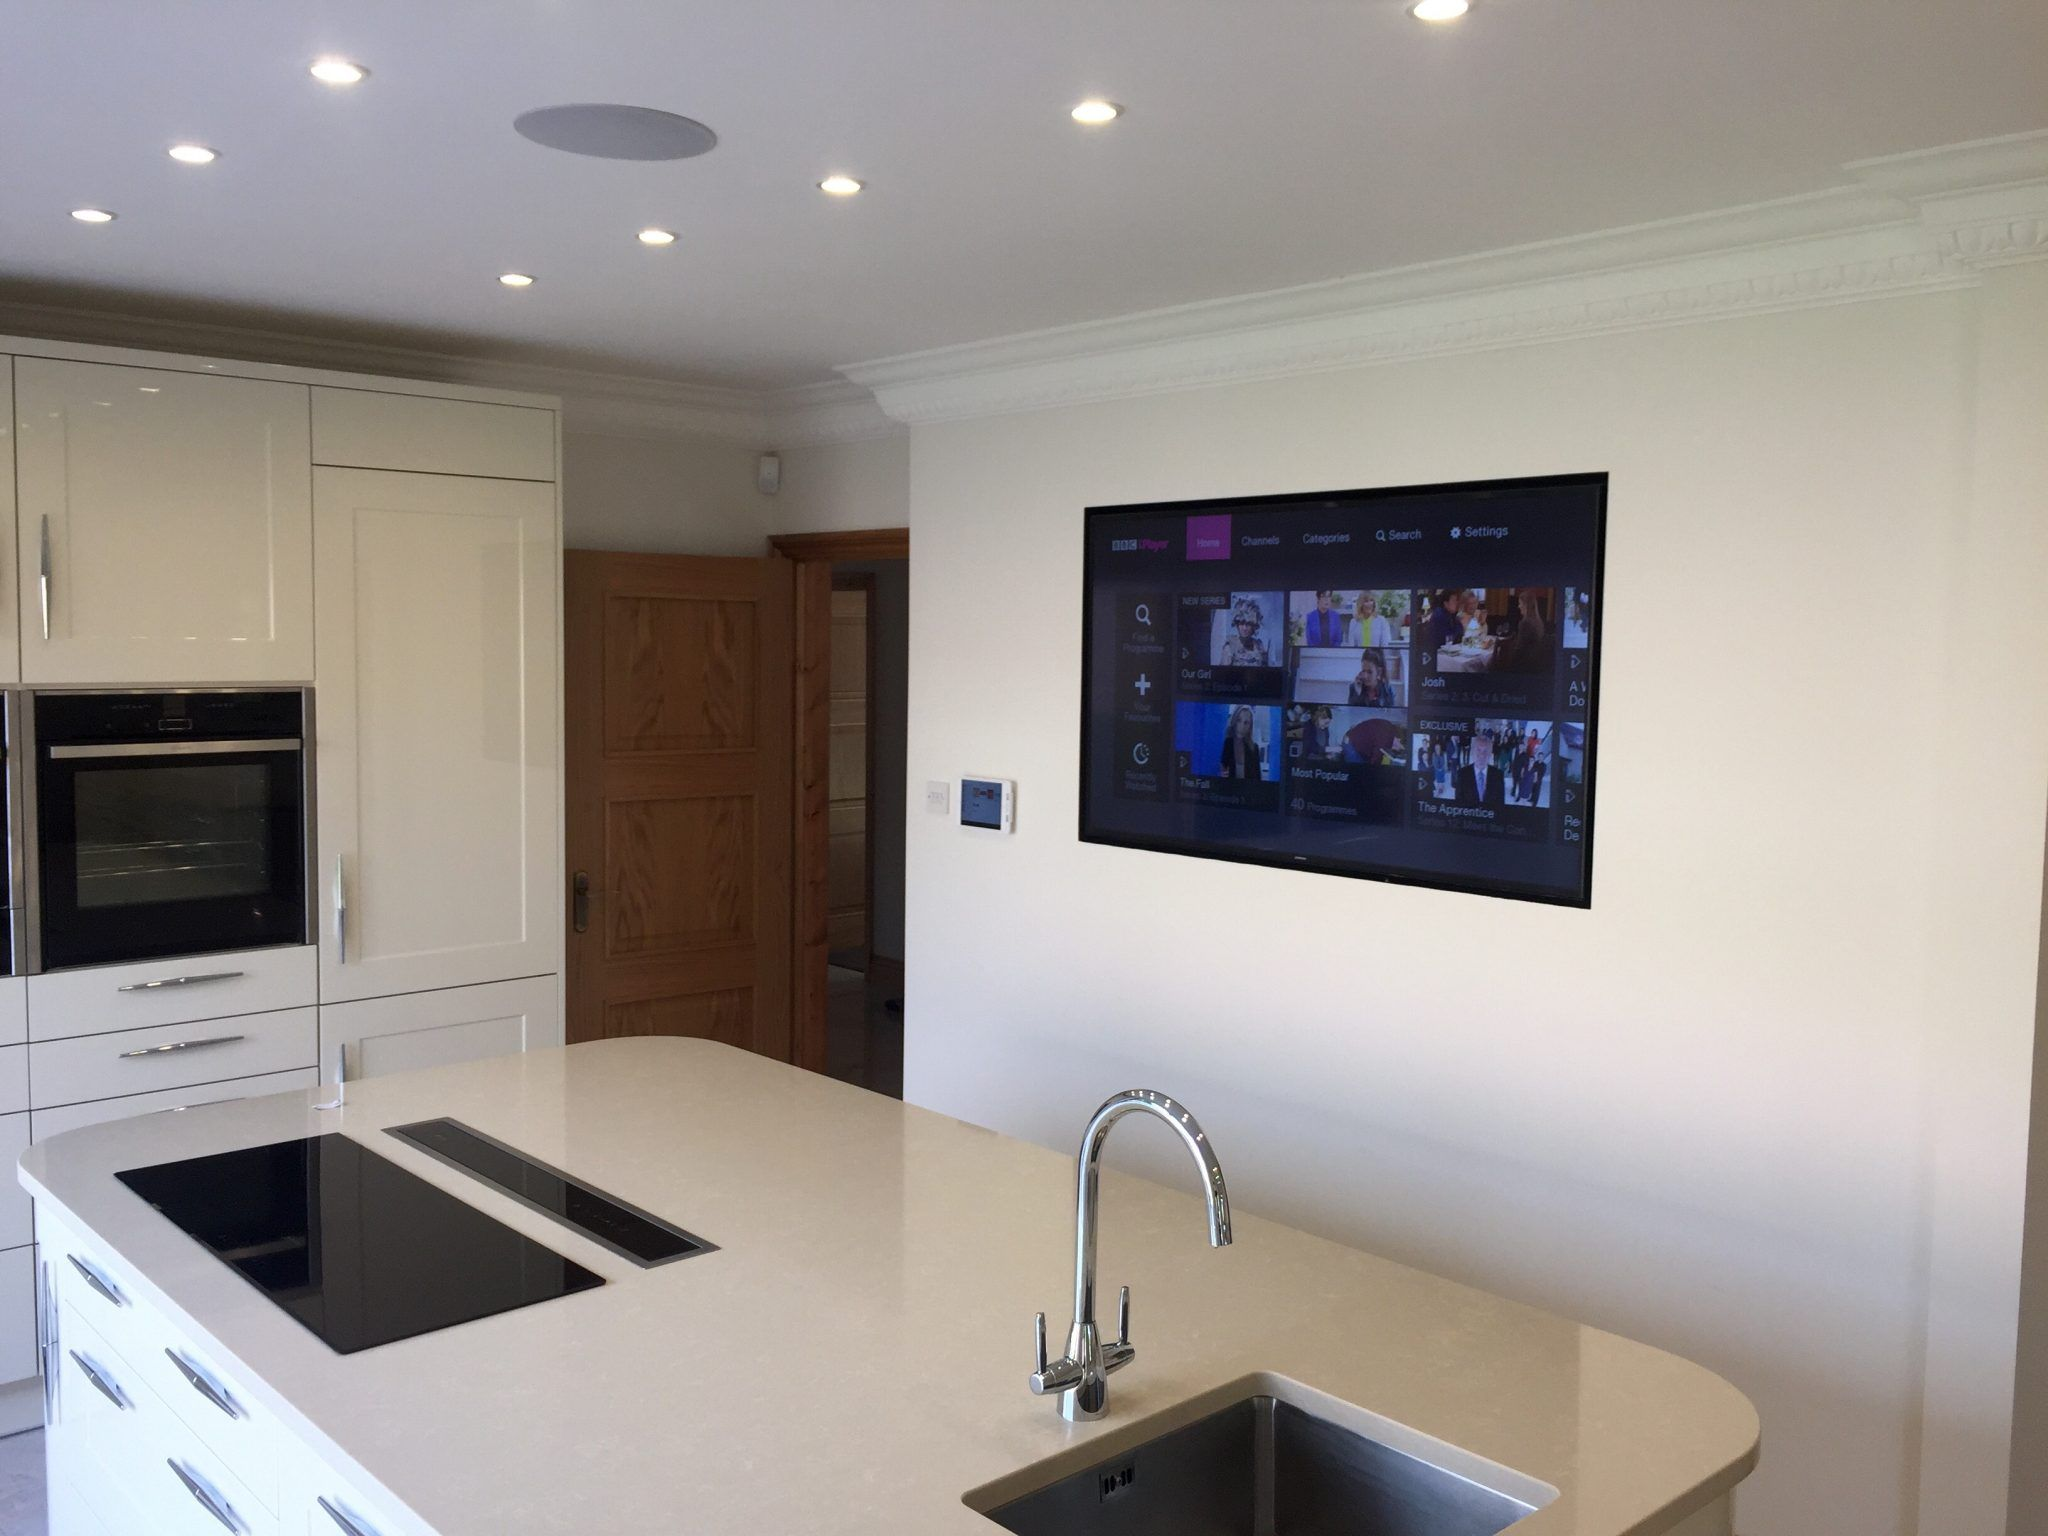 Wall Mounted Tv In Kitchen Tv In Kitchen Wall Mounted Tv Mounted Tv